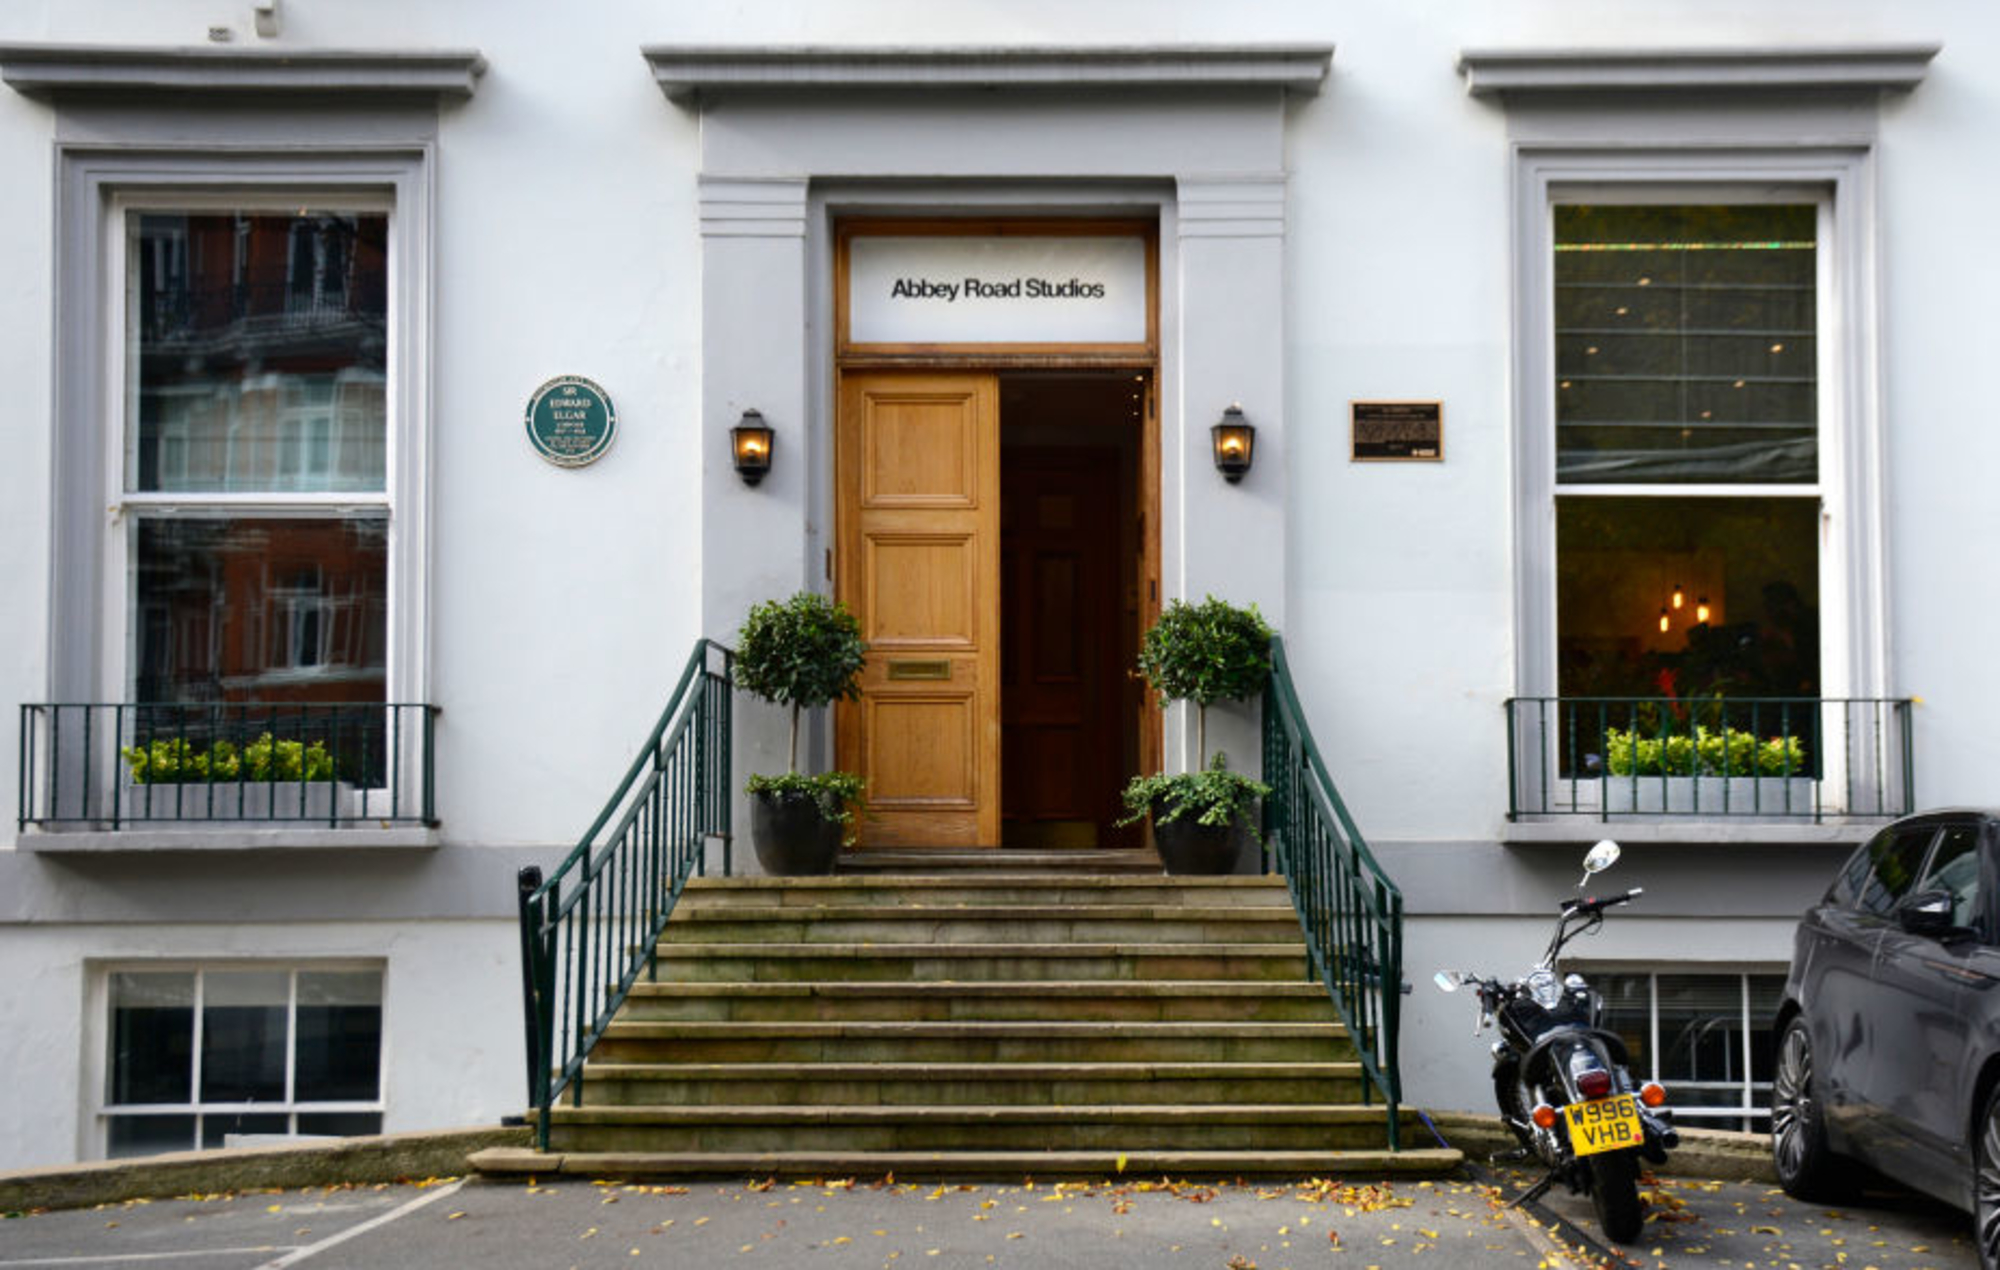 Abbey Road Studios launches music scholarship programme for Black students